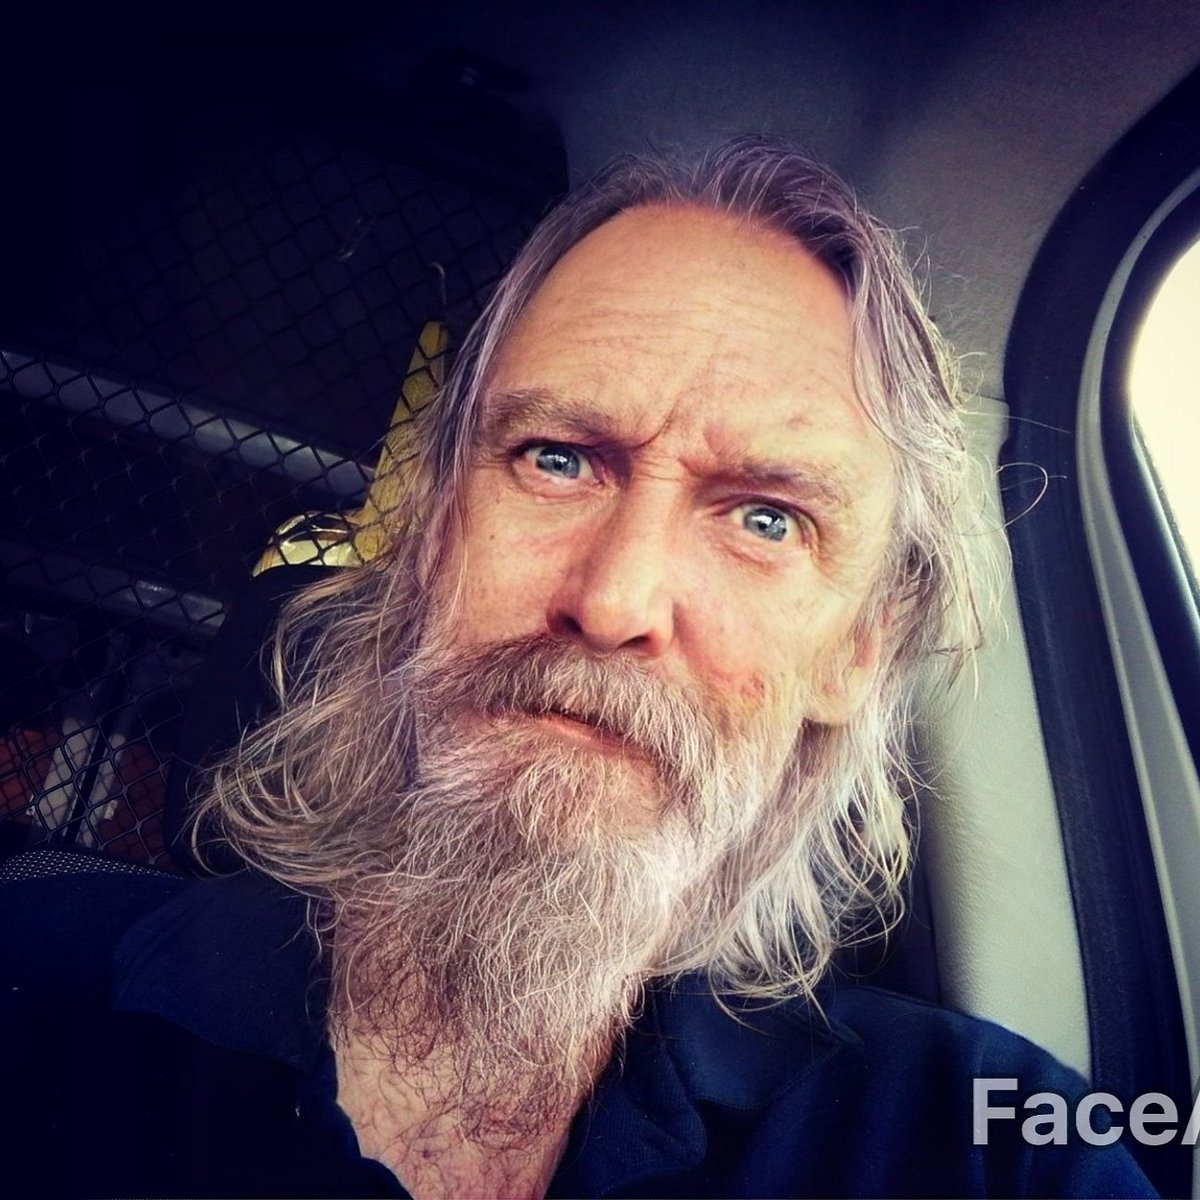 I am going to be a cool old guy.  #FaceApp #faceappchallenge #oldtimer #LateToTheGame<br>http://pic.twitter.com/dr6NlGqkjh